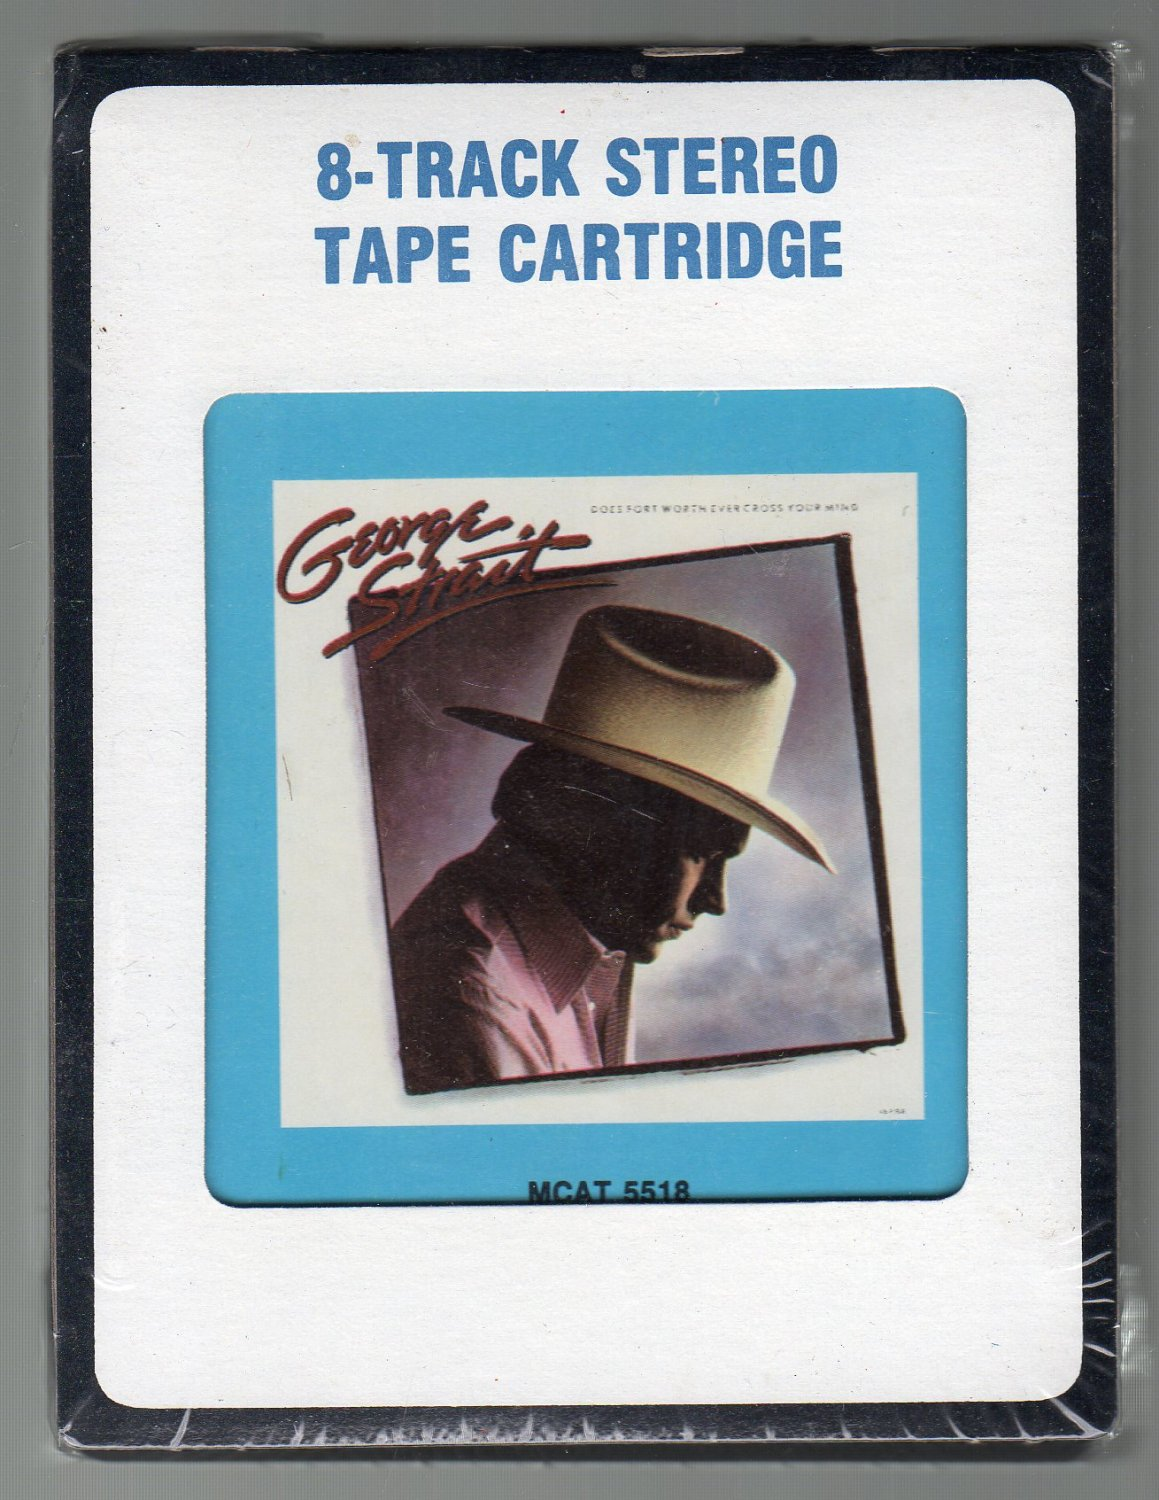 George Strait - Does Ft. Worth Ever Cross Your Mind 1984 CRC SOLD Sealed 8-track tape